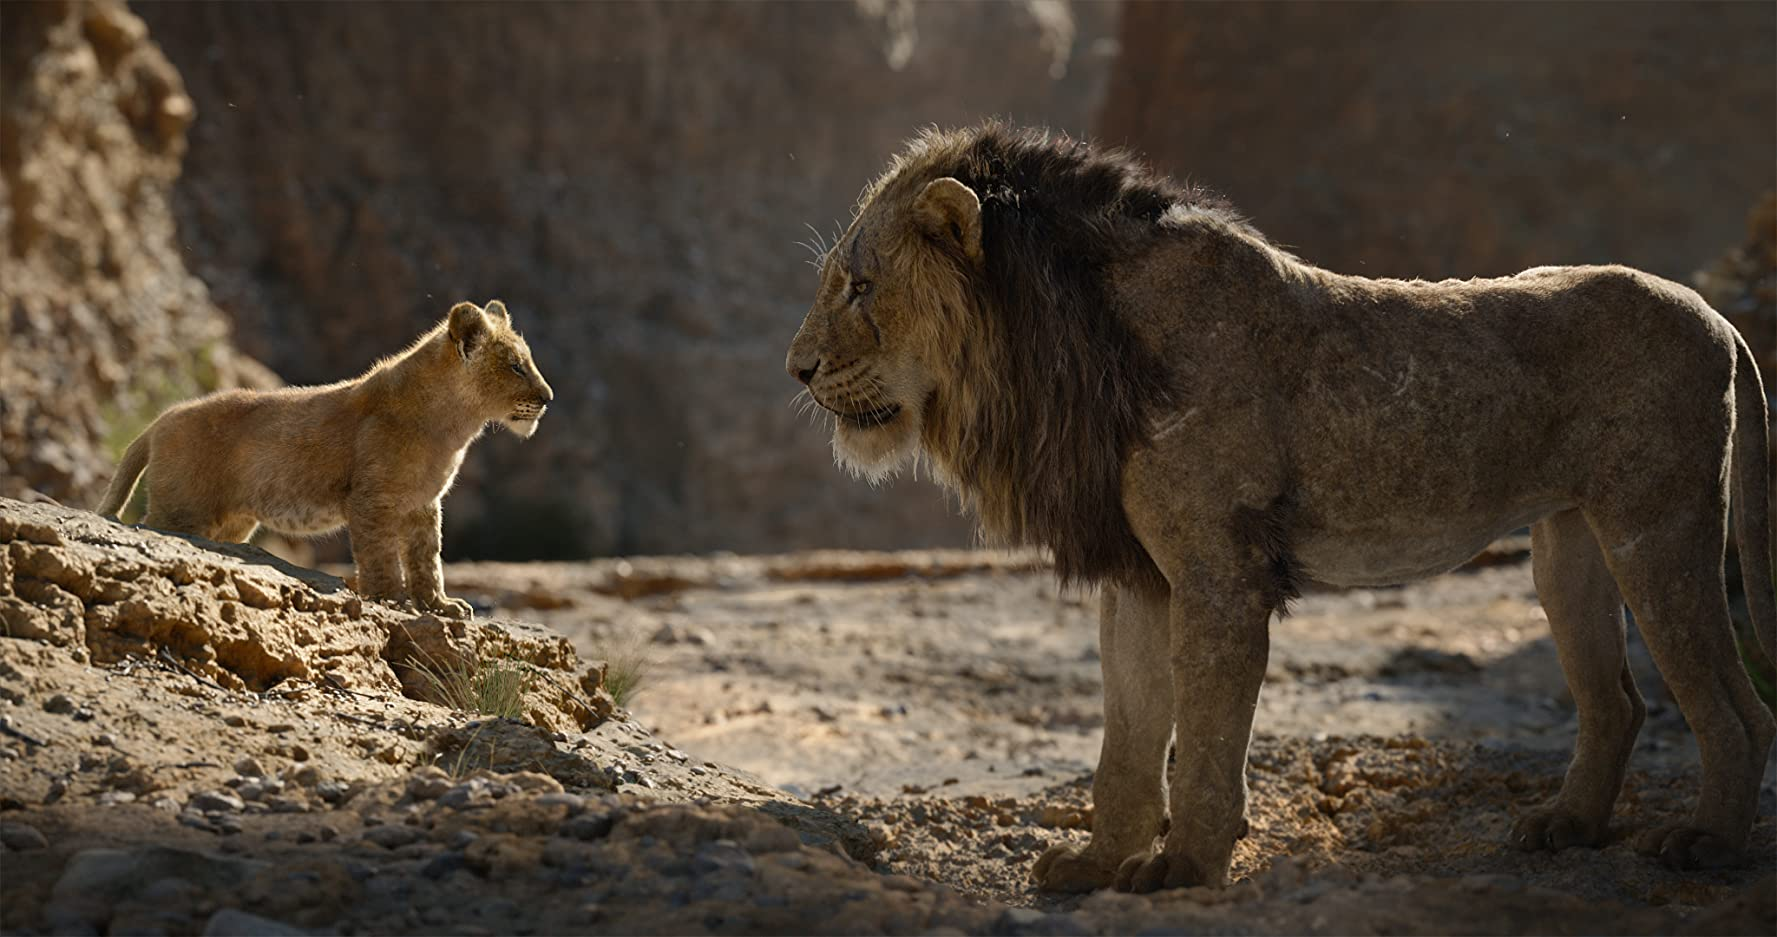 Chiwetel Ejiofor and JD McCrary in The Lion King (2019)